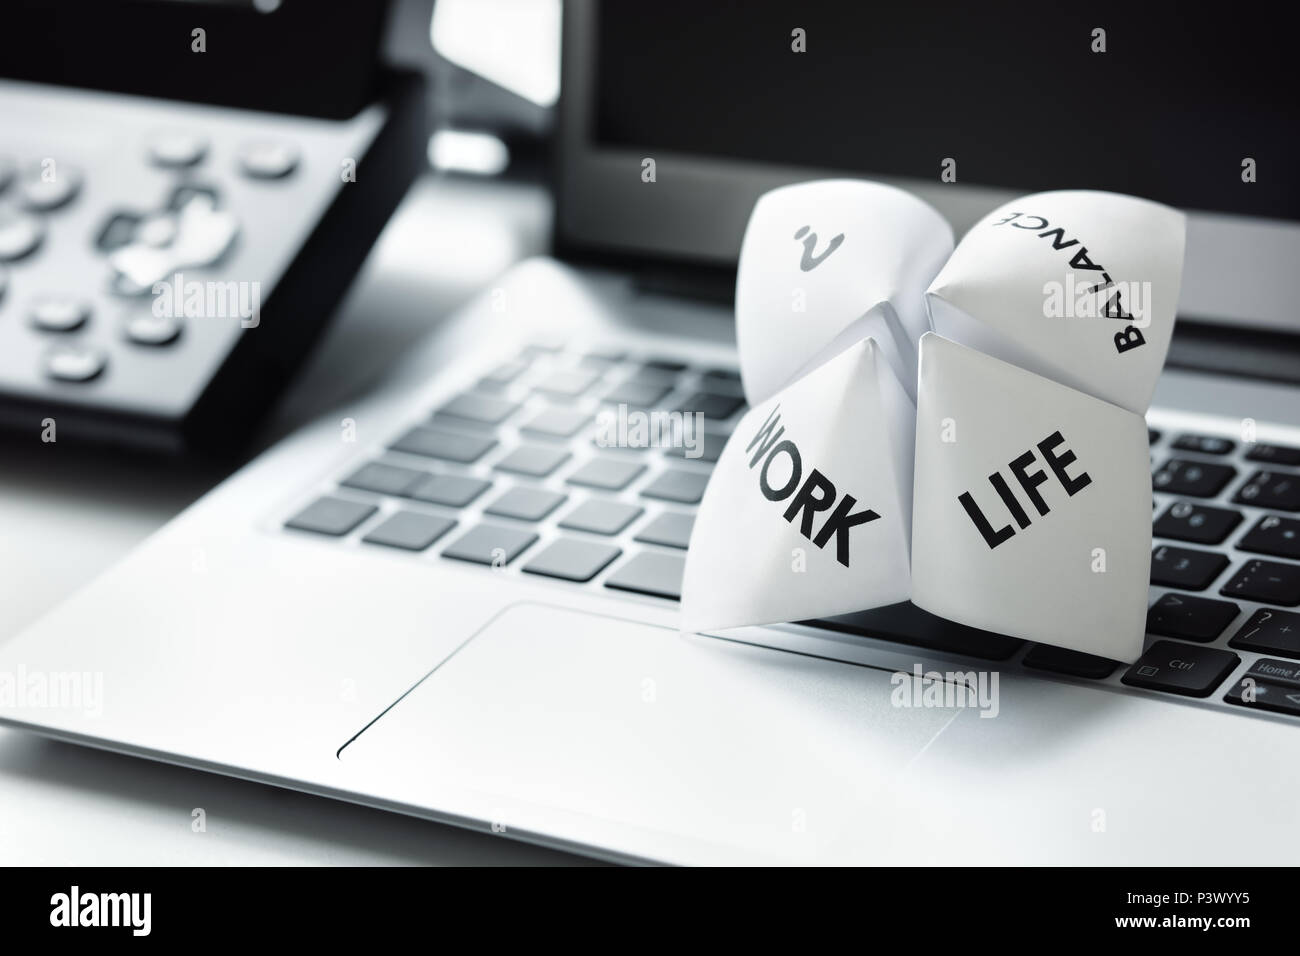 Origami fortune teller on laptop in office concept for work life balance choices Stock Photo